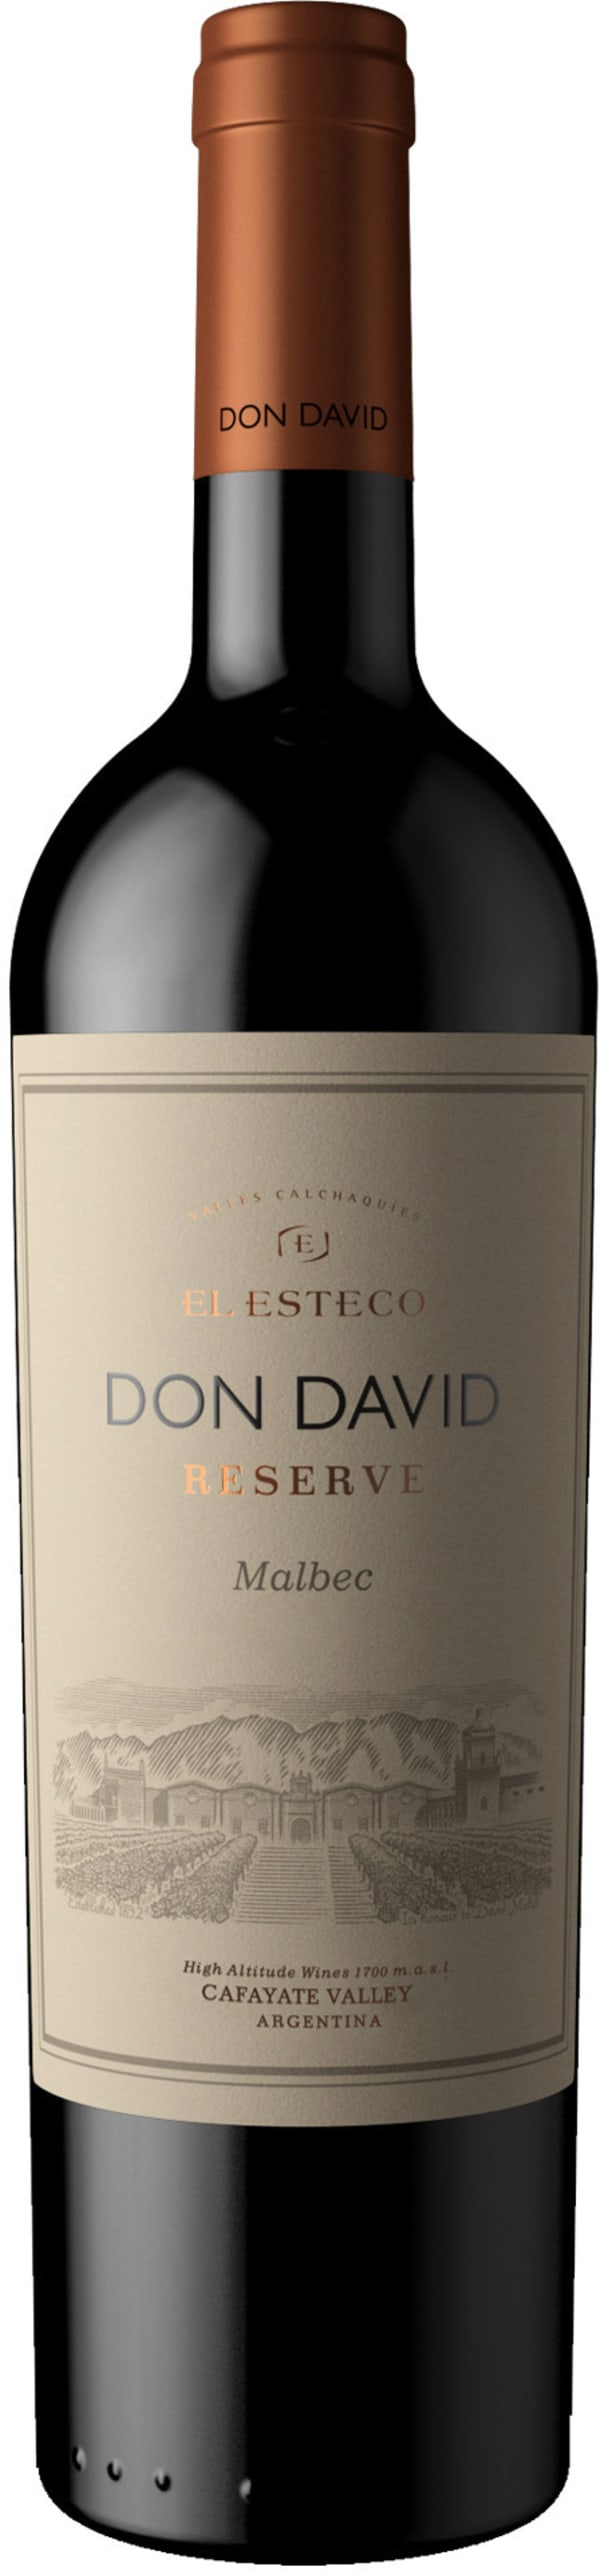 Don David Malbec Reserve 2016